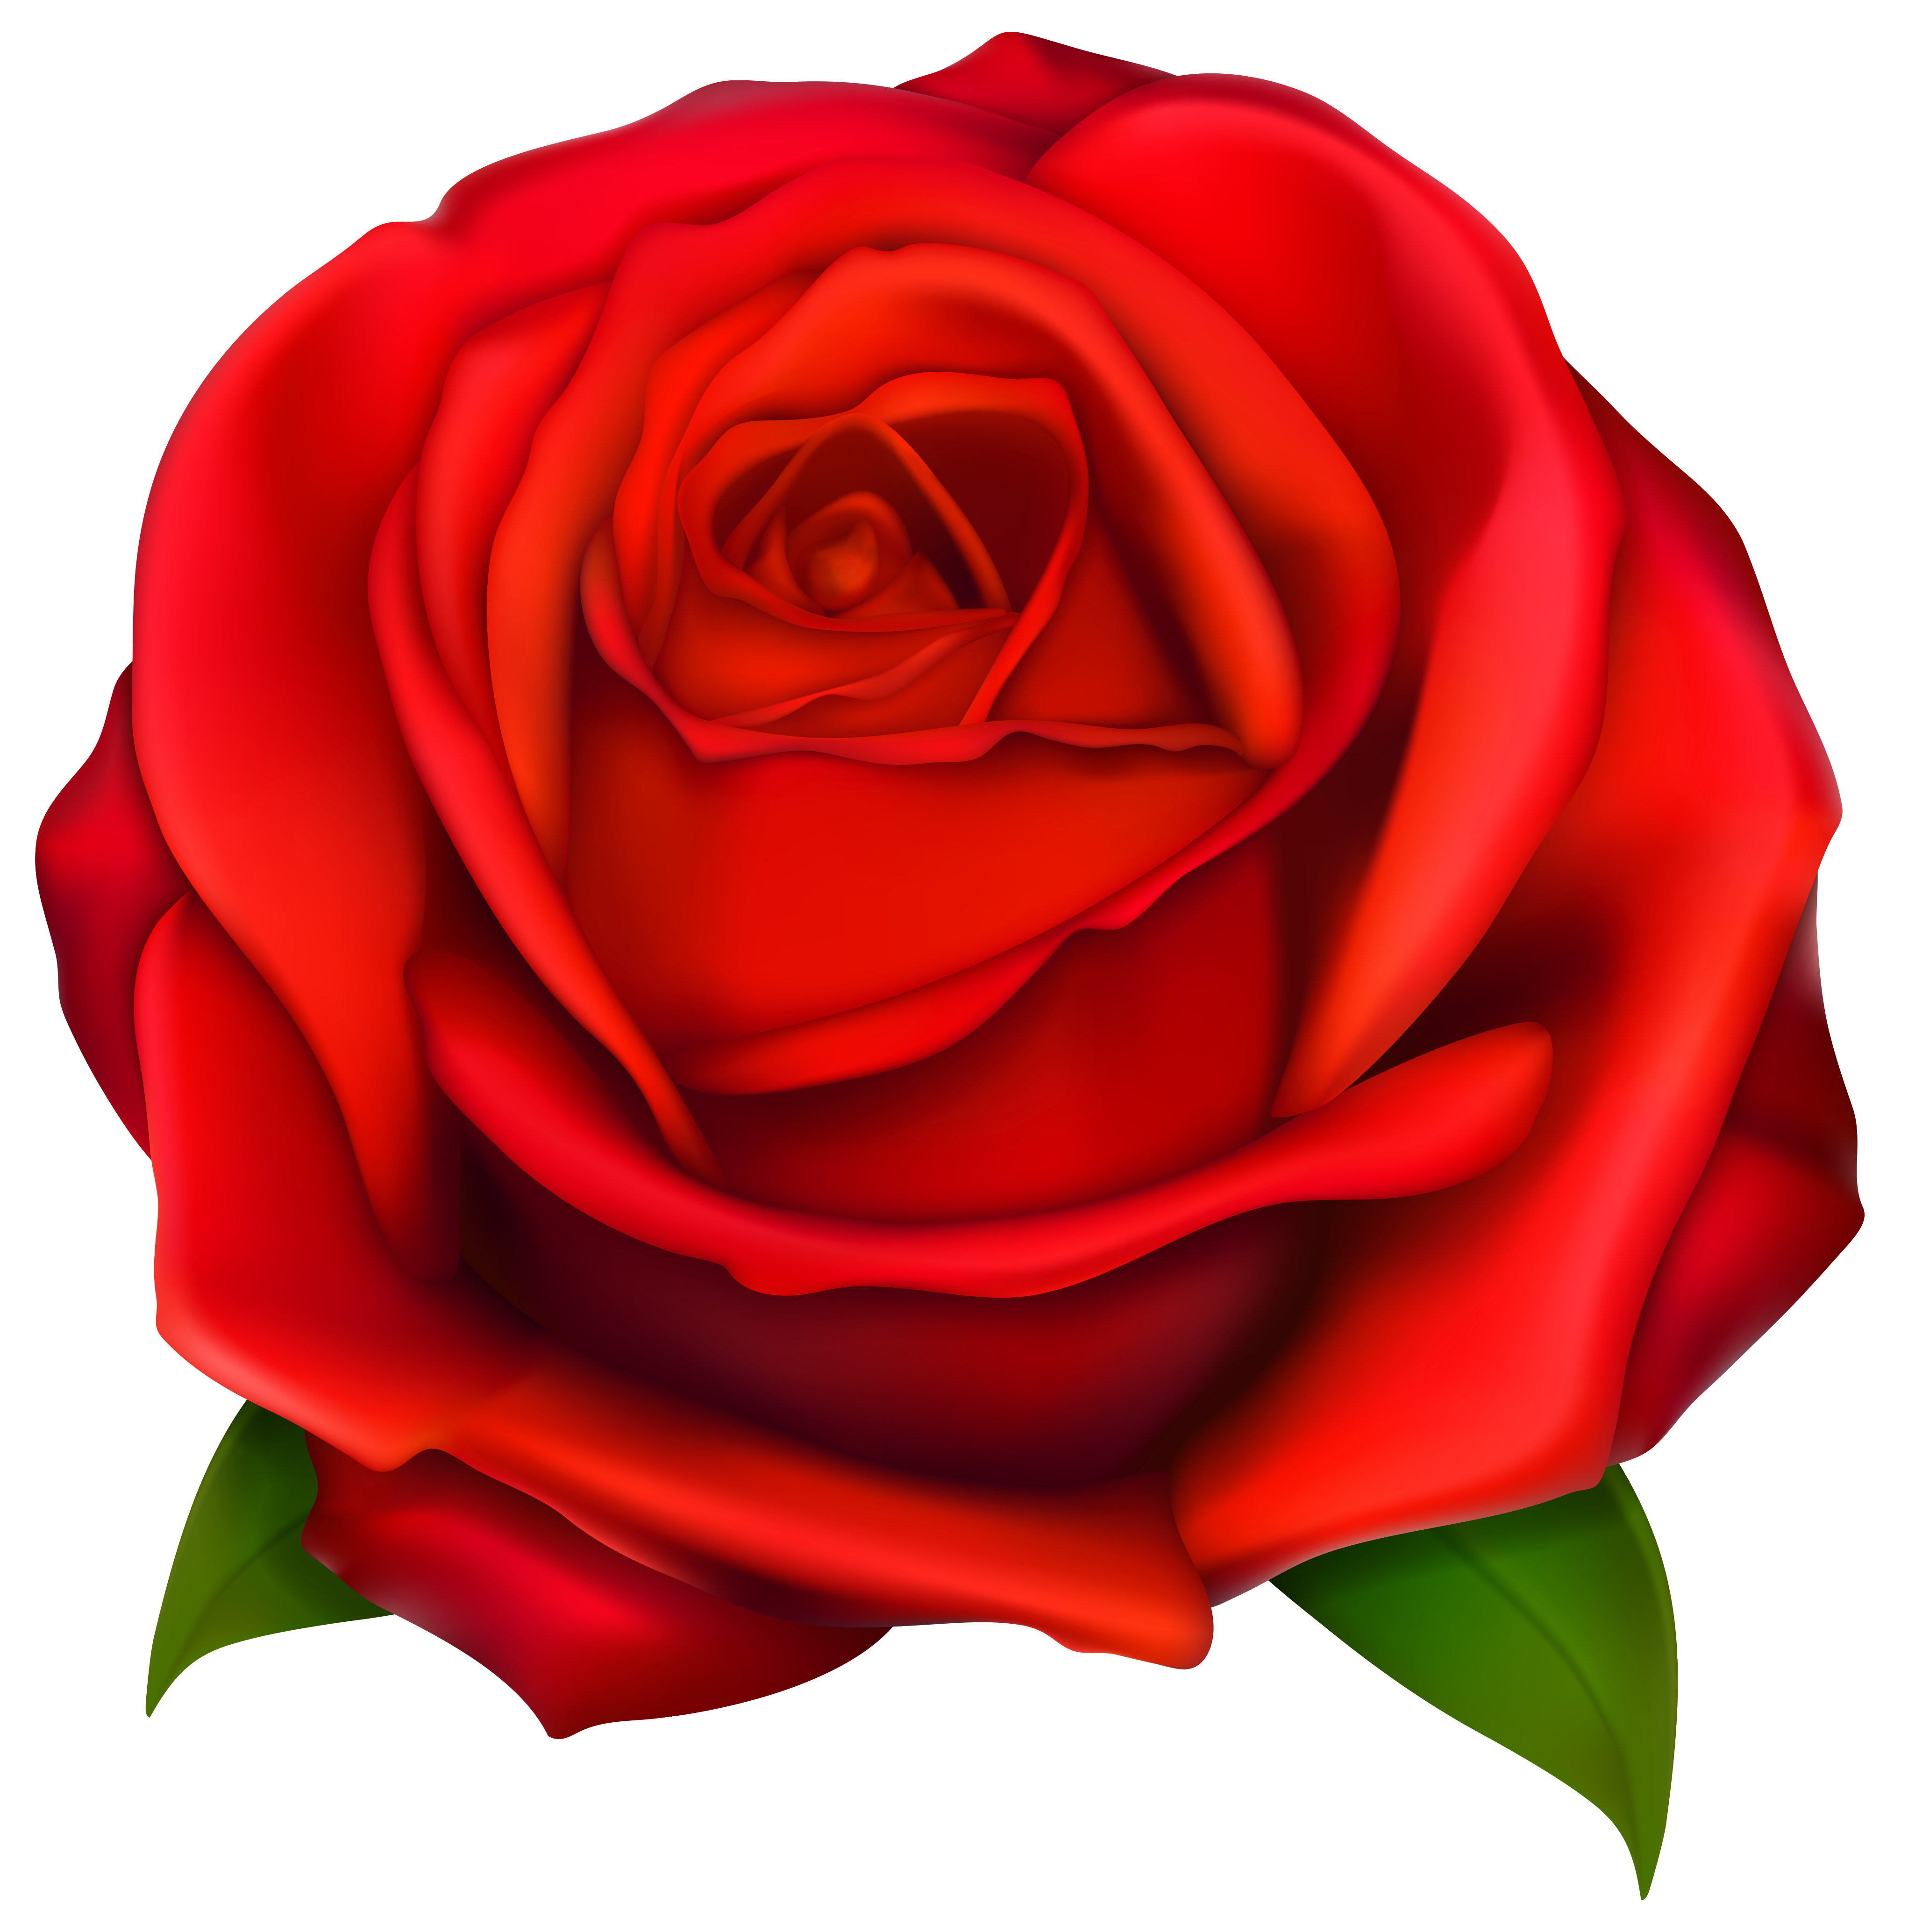 Image Of Clip Art Red Rose 2 Red Roses C-Image of clip art red rose 2 red roses clip art images free-11